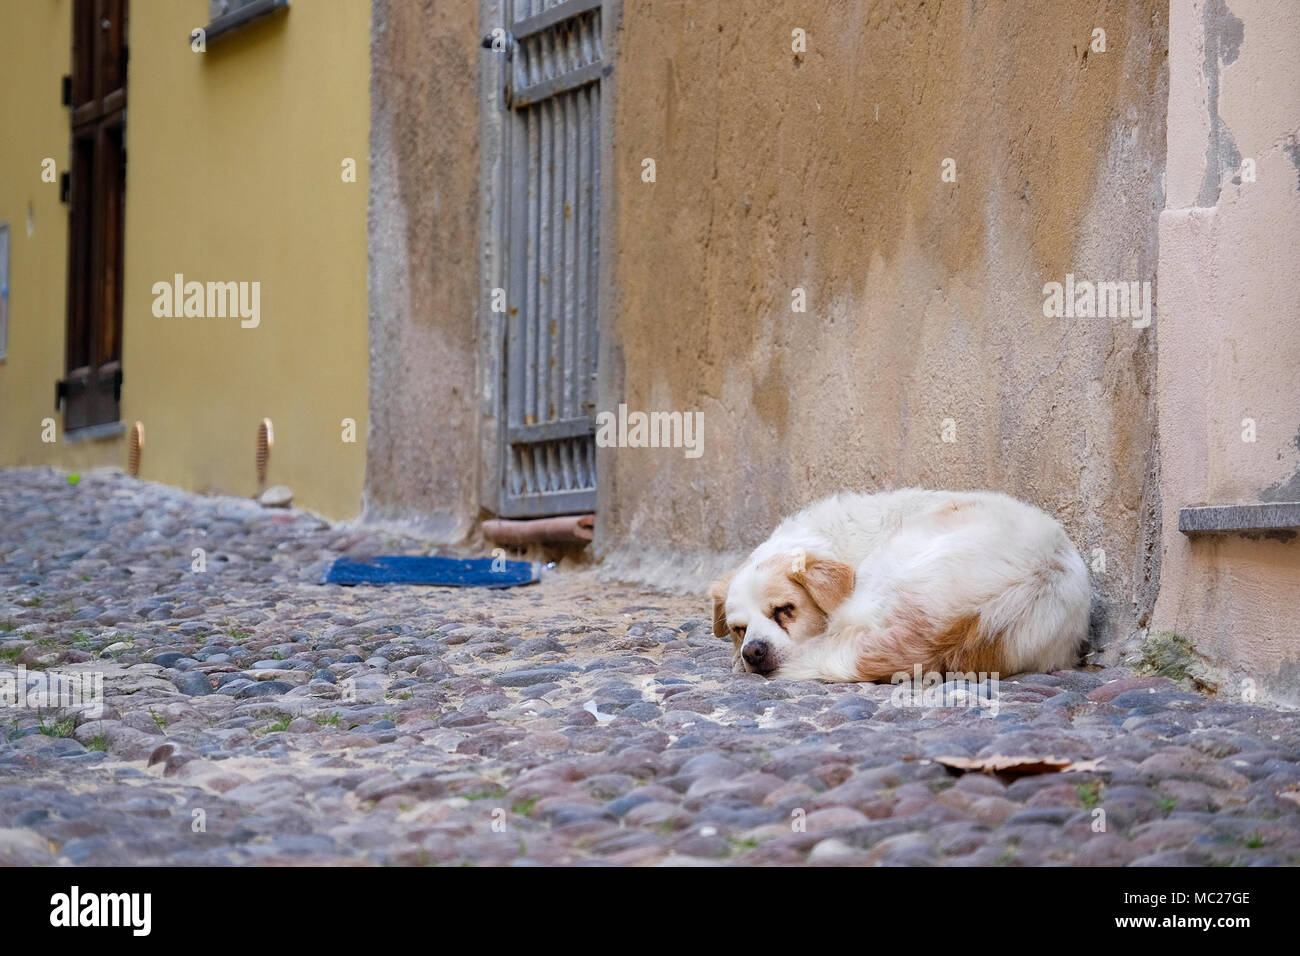 stray dog is sleeping on the street of cobblestones - Stock Image